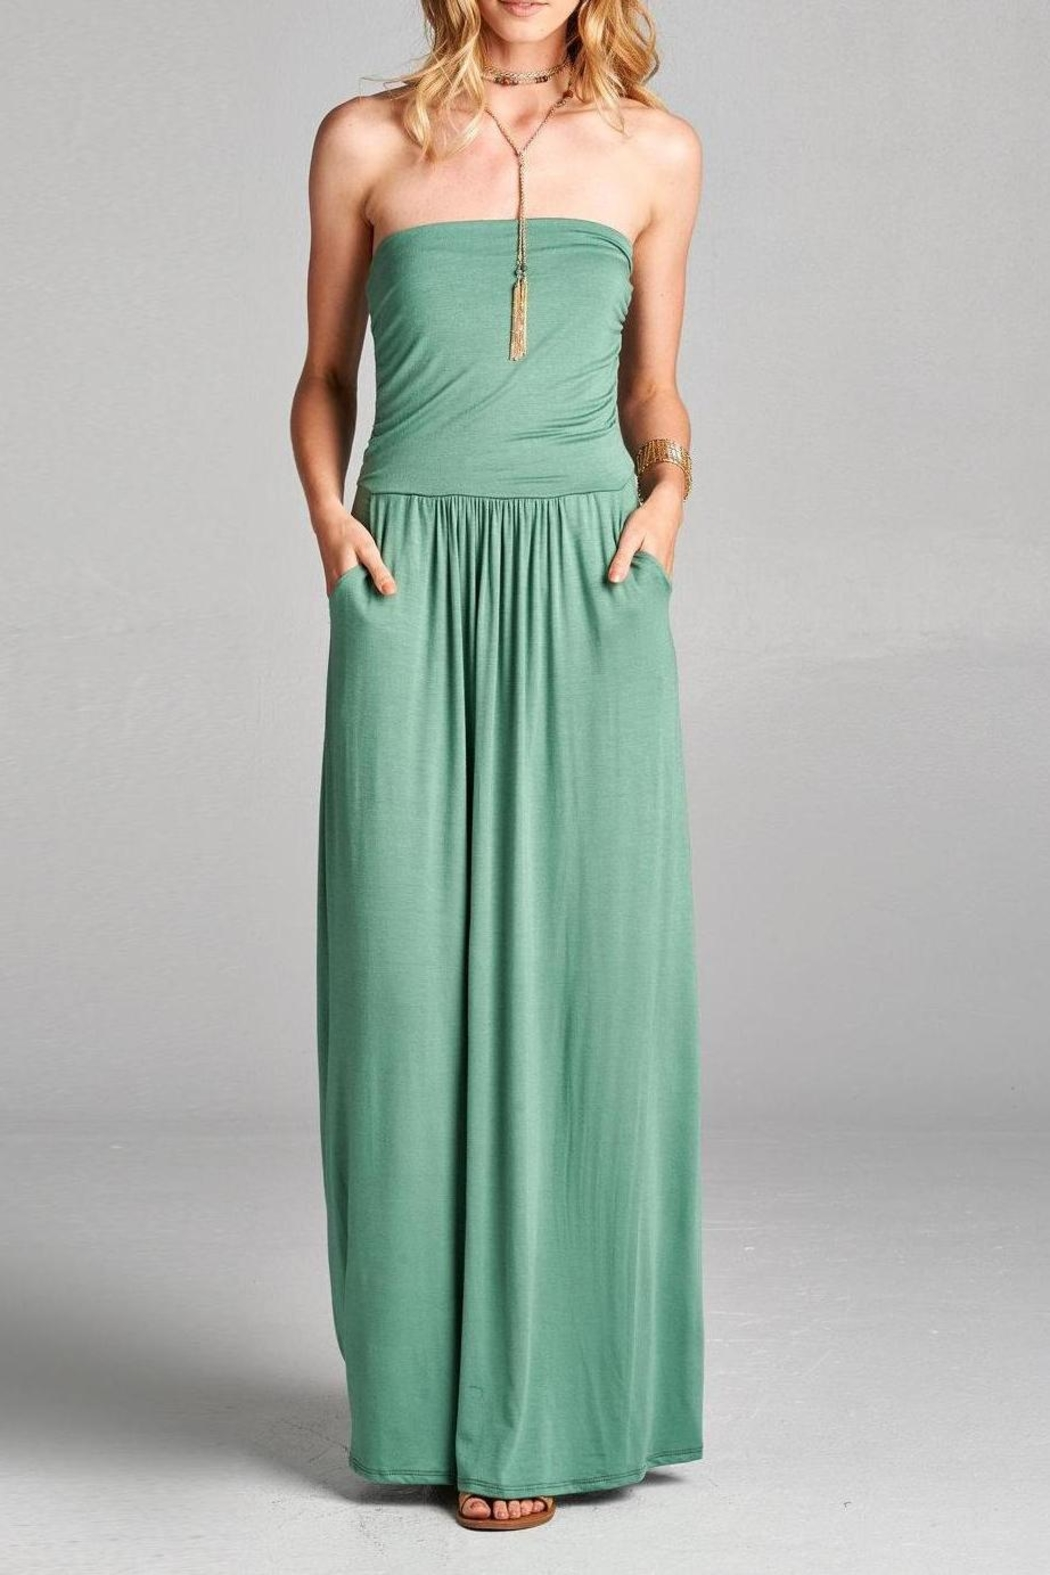 Love Kuza Strapless Casual Maxi Dress - Main Image